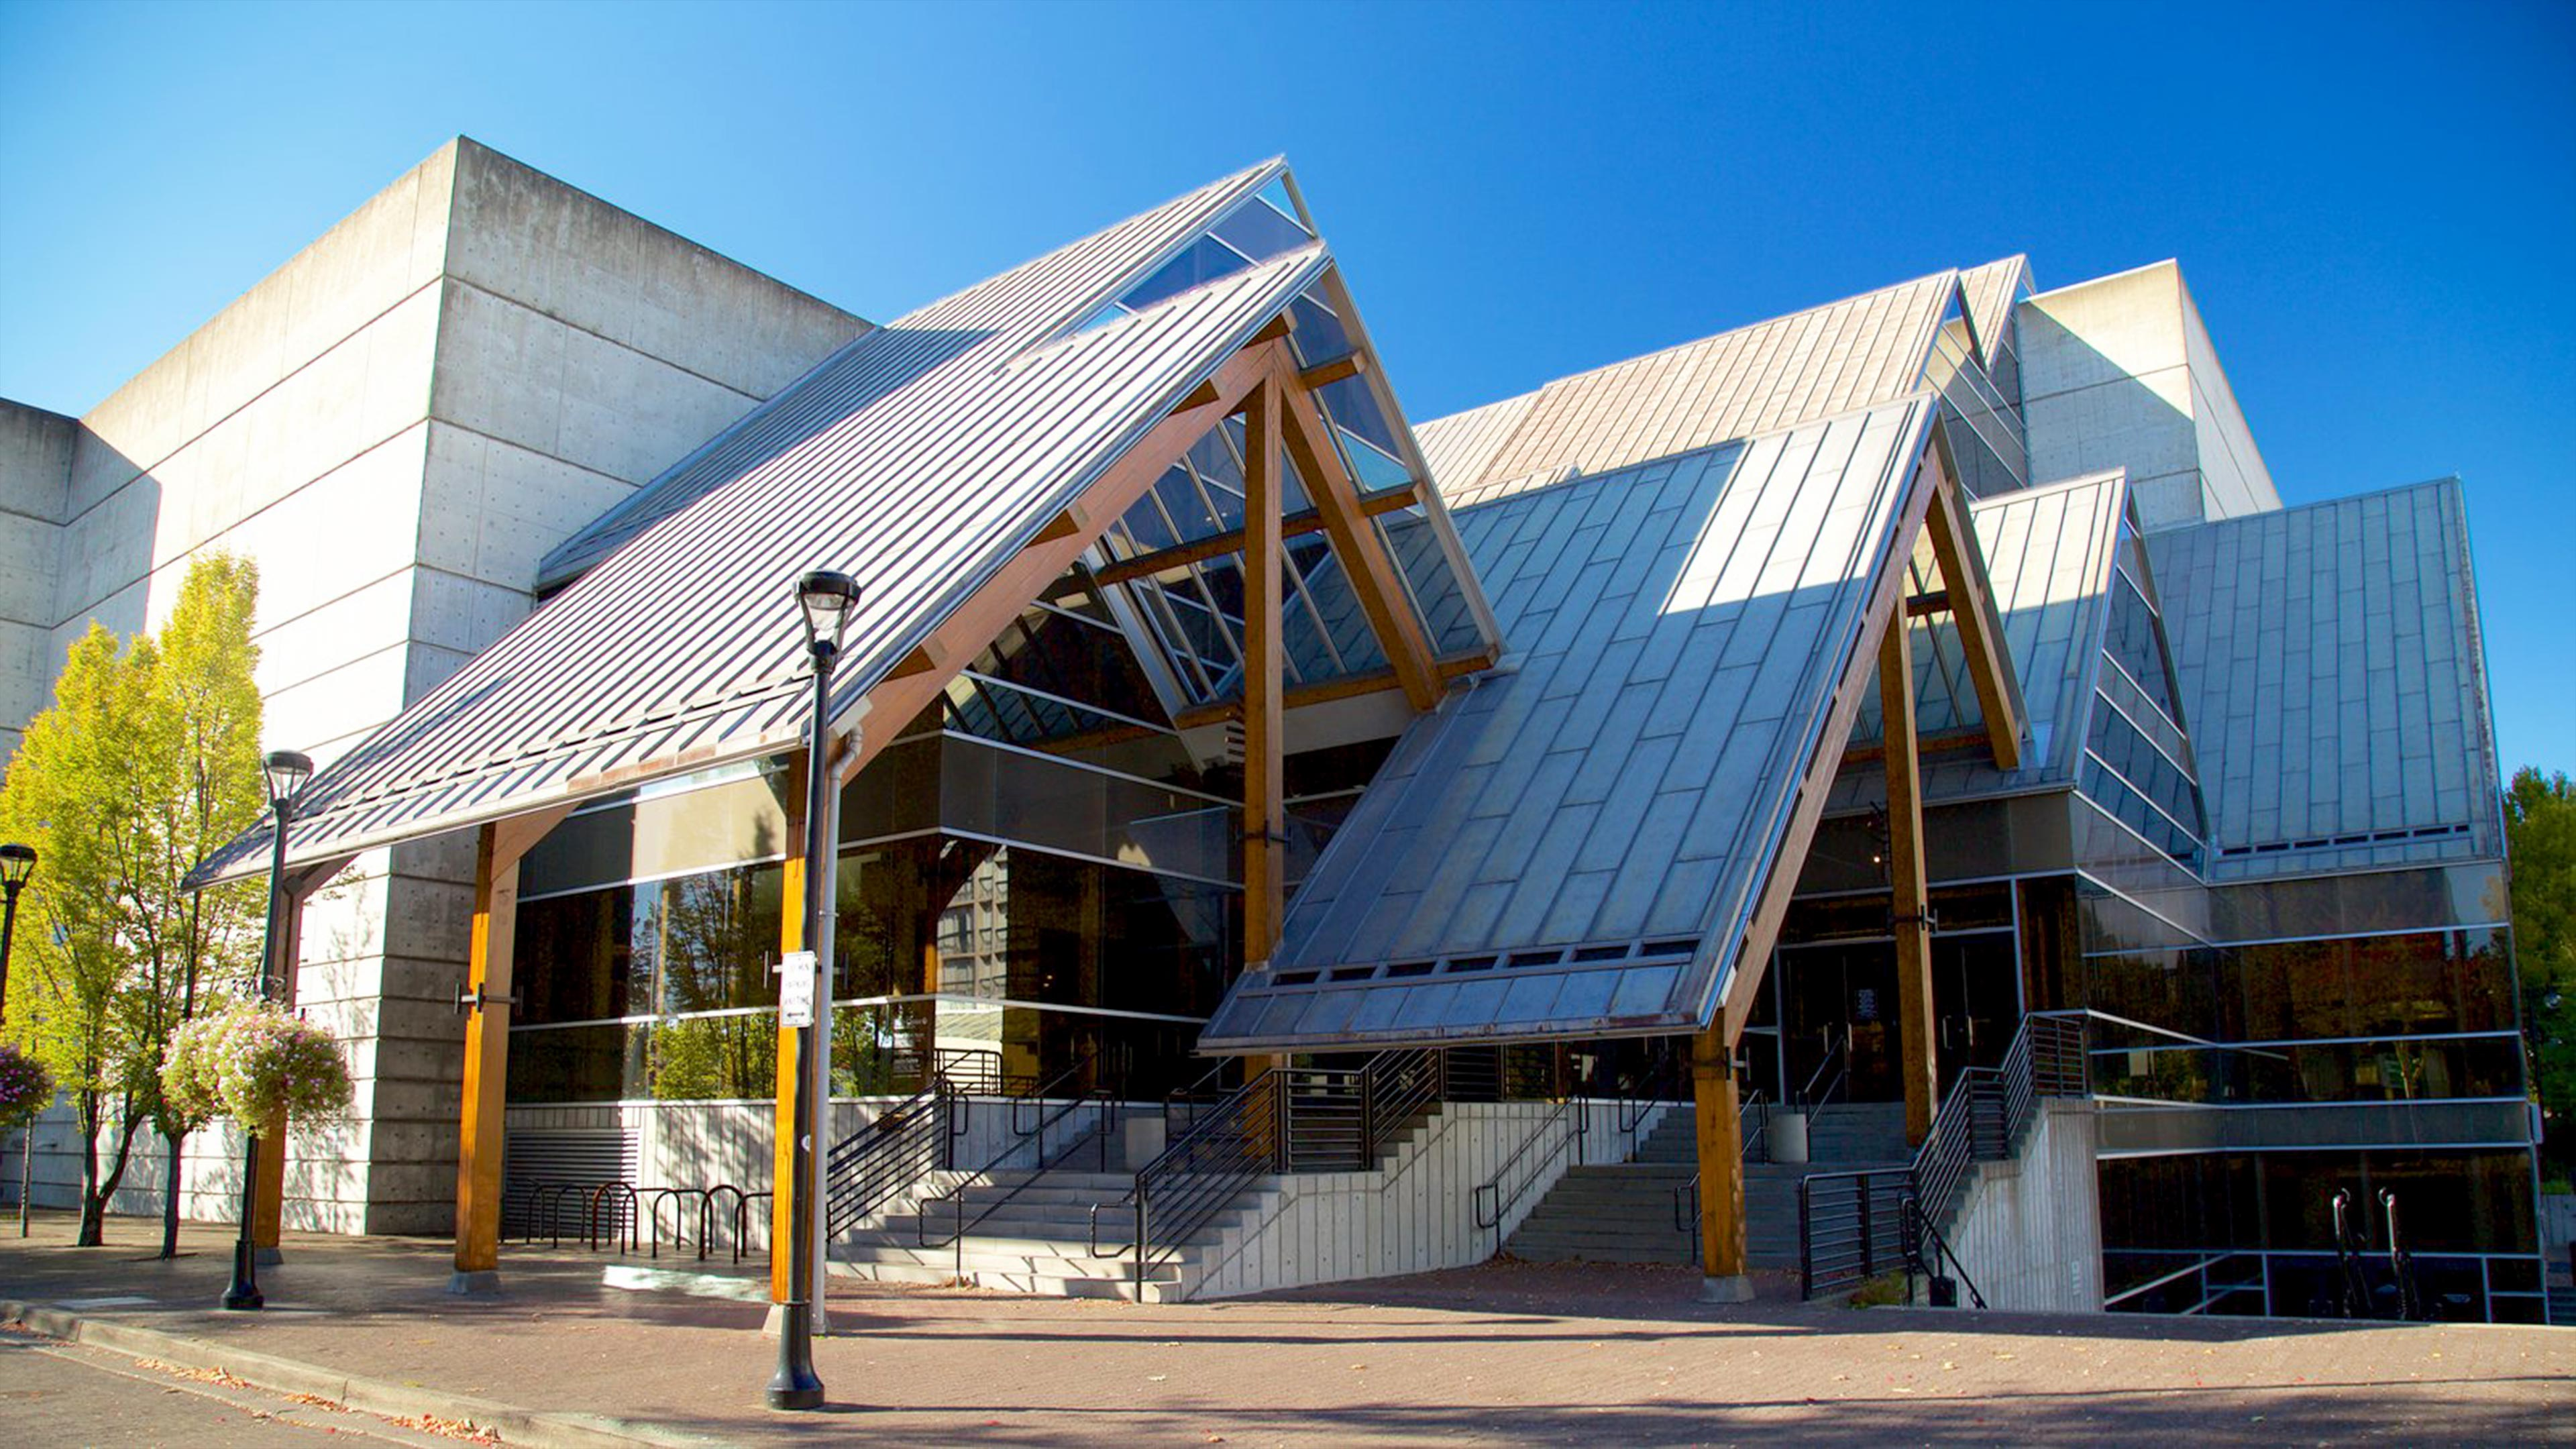 Hult center for the performing arts lemessurier for Architects eugene oregon